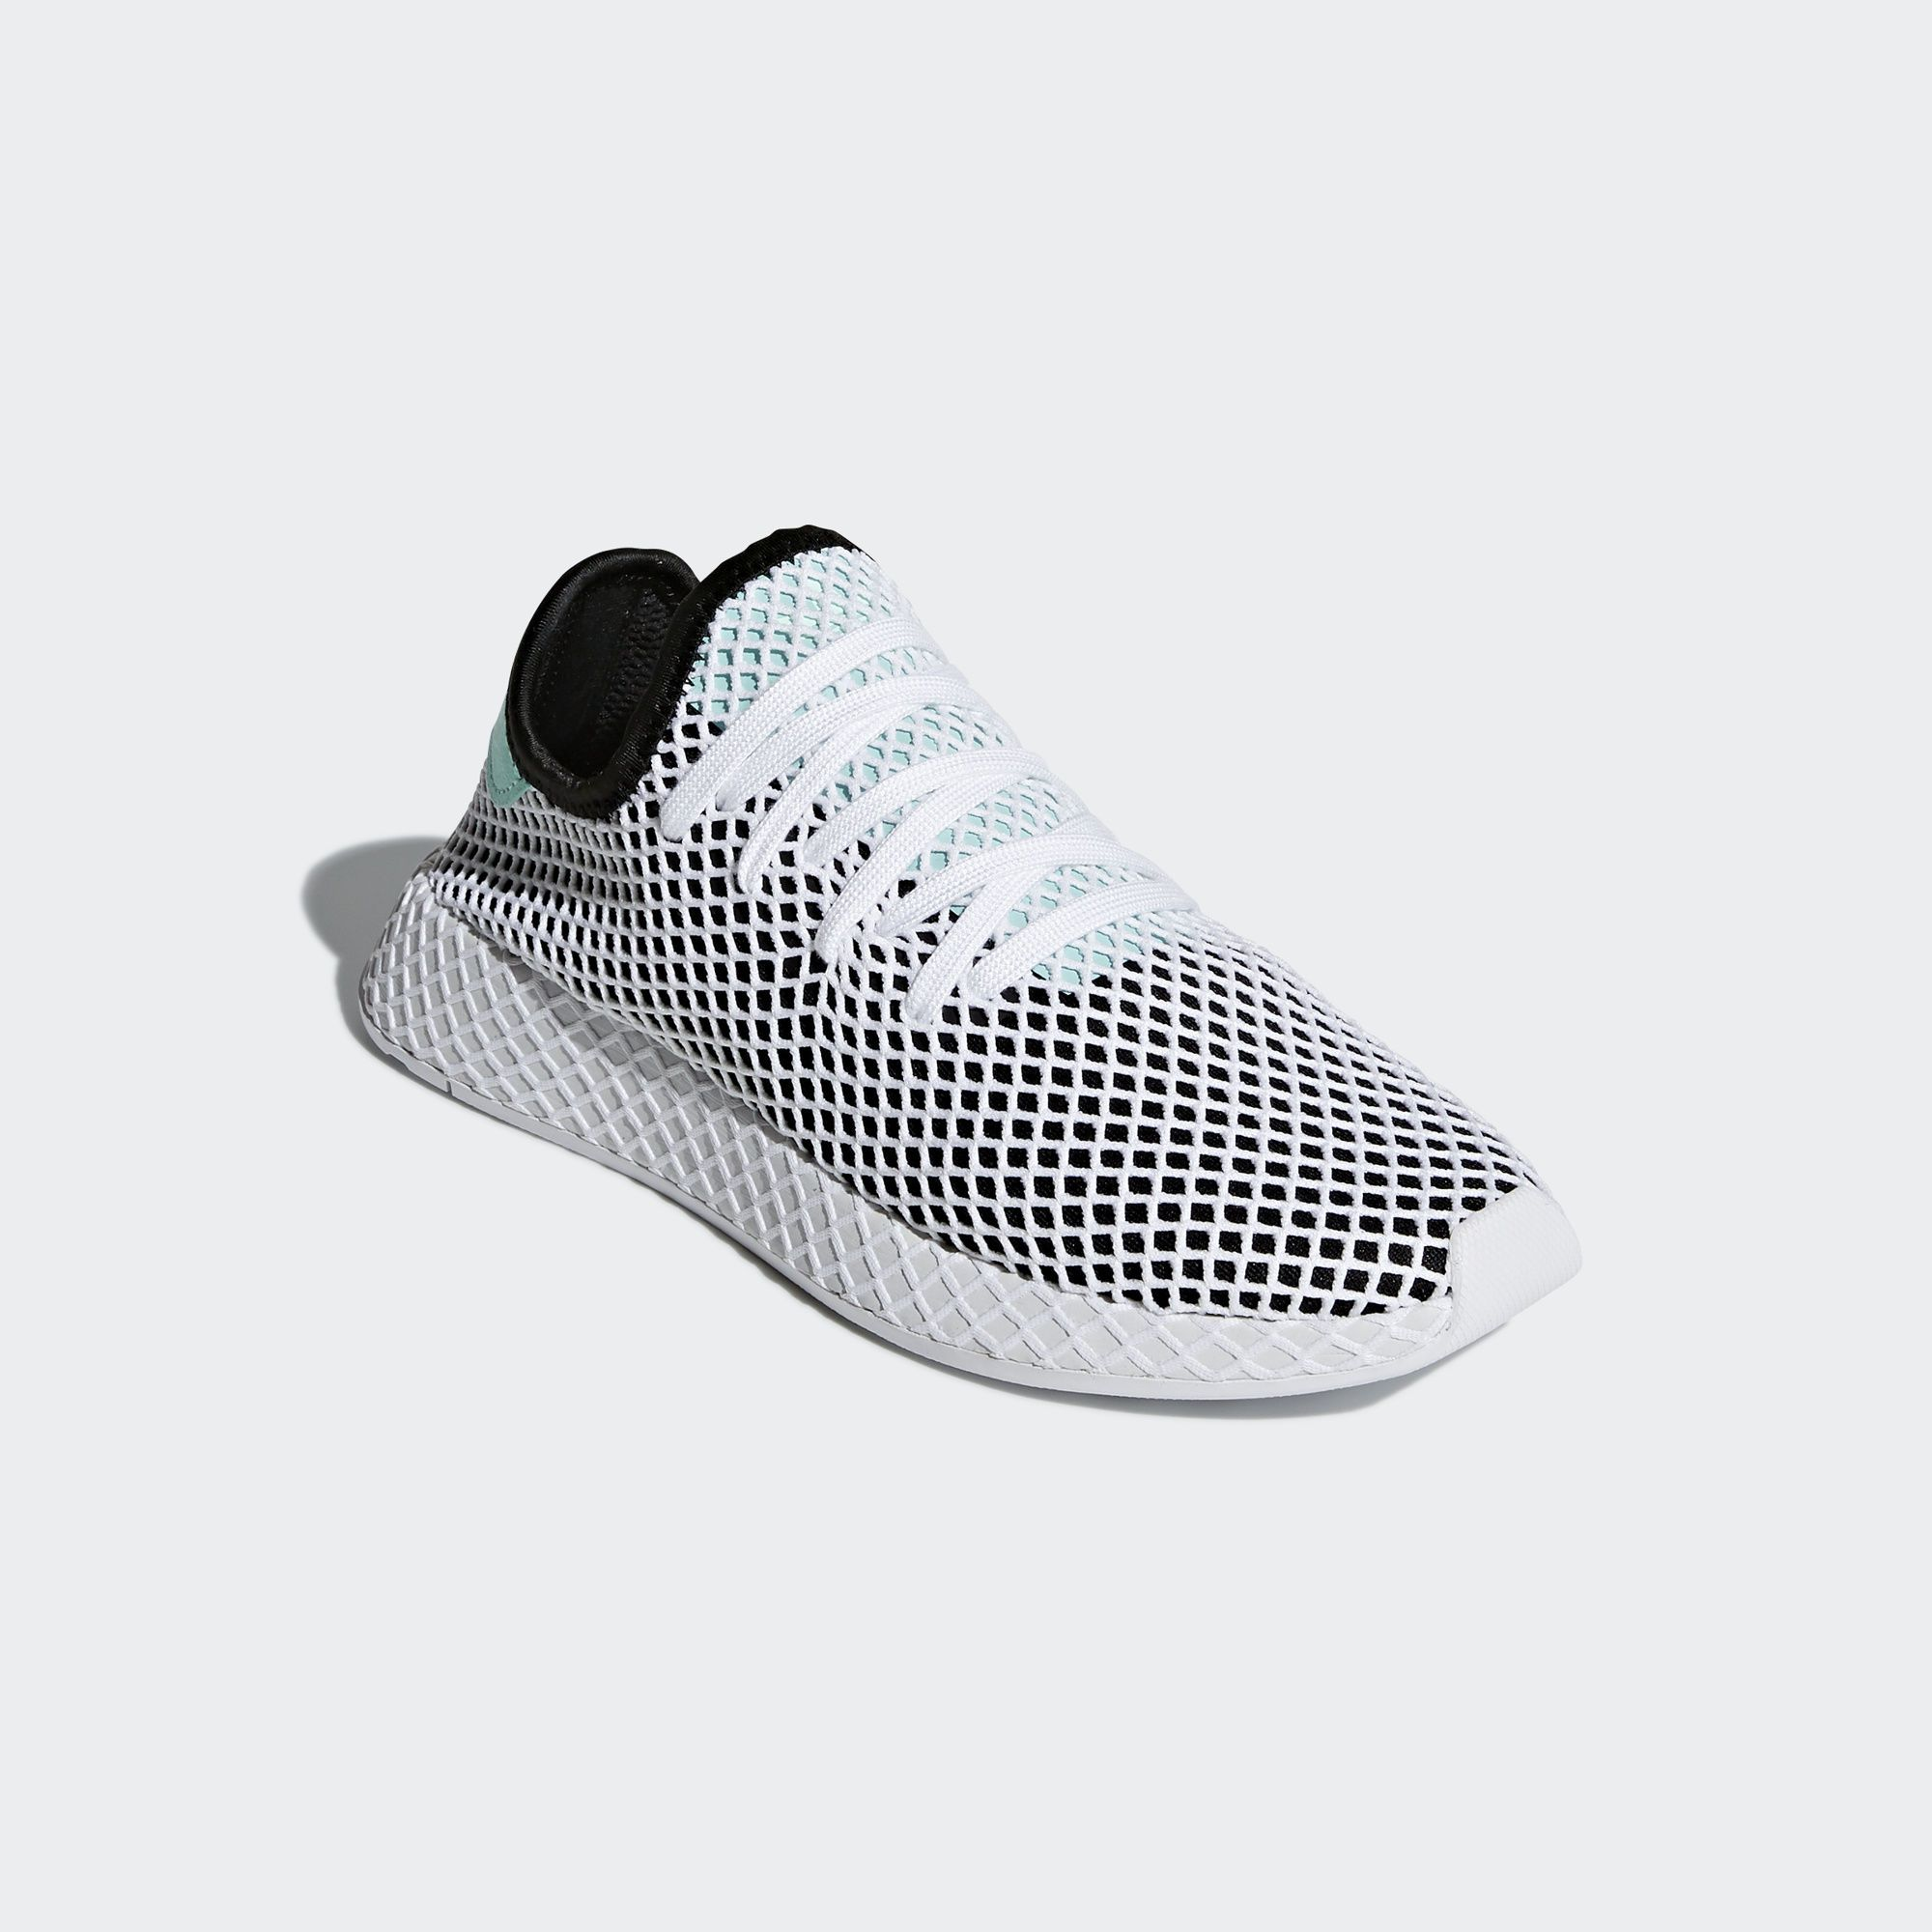 reputable site d3489 42e68 Chaussure Deerupt Runner - noir adidas  adidas France